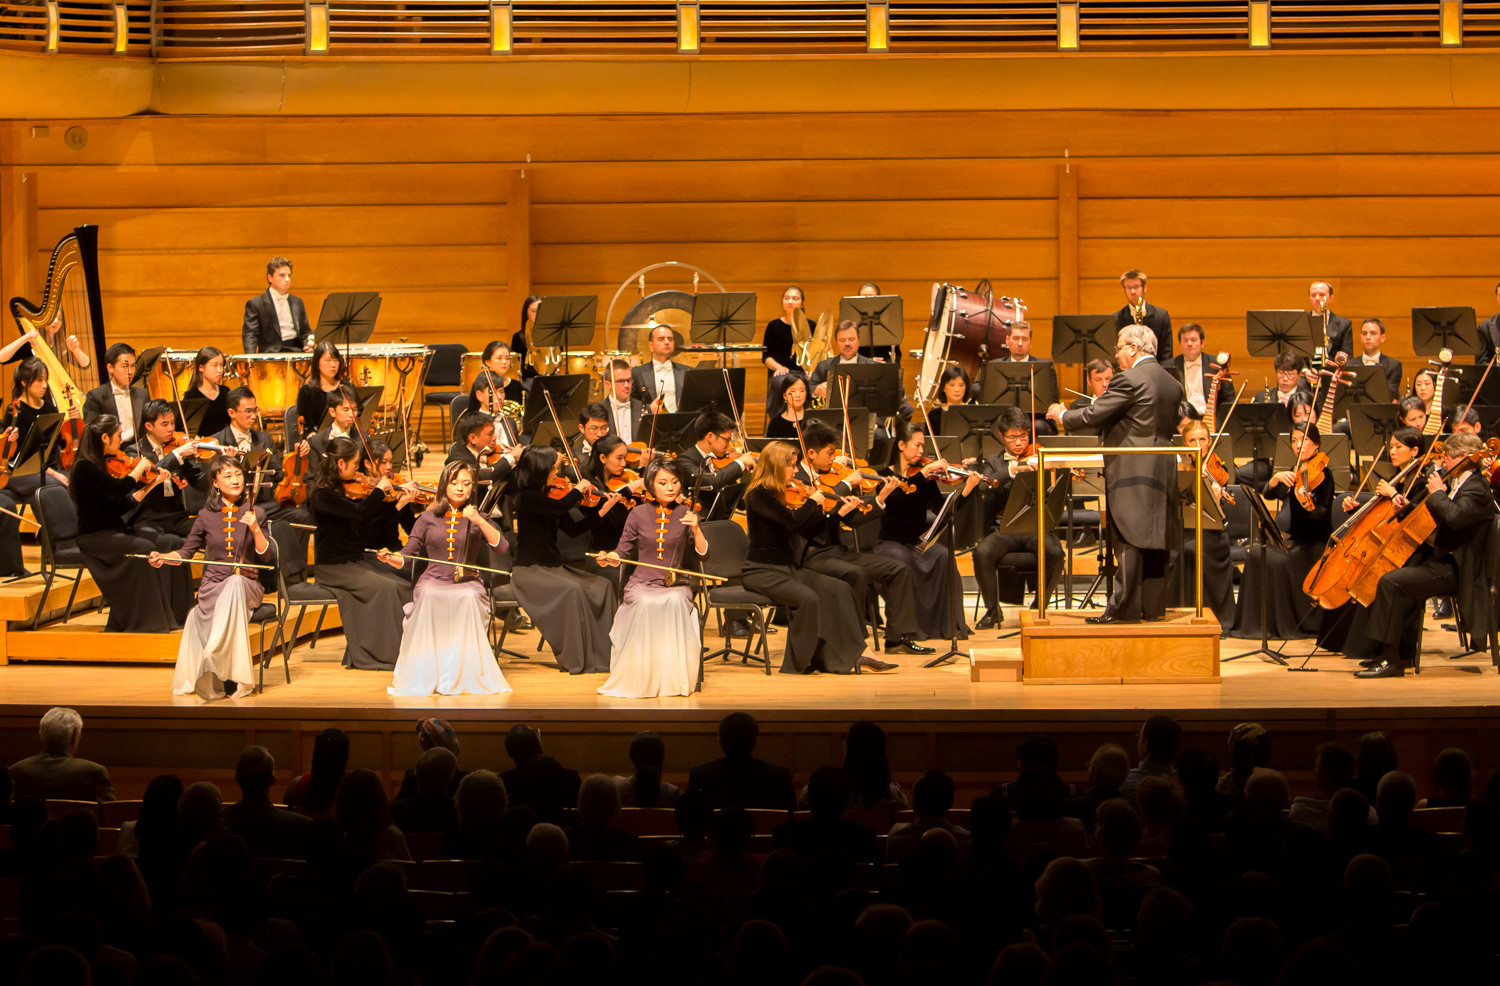 Audience Says Shen Yun Symphony Orchestra Is a 'Sacred Experience'